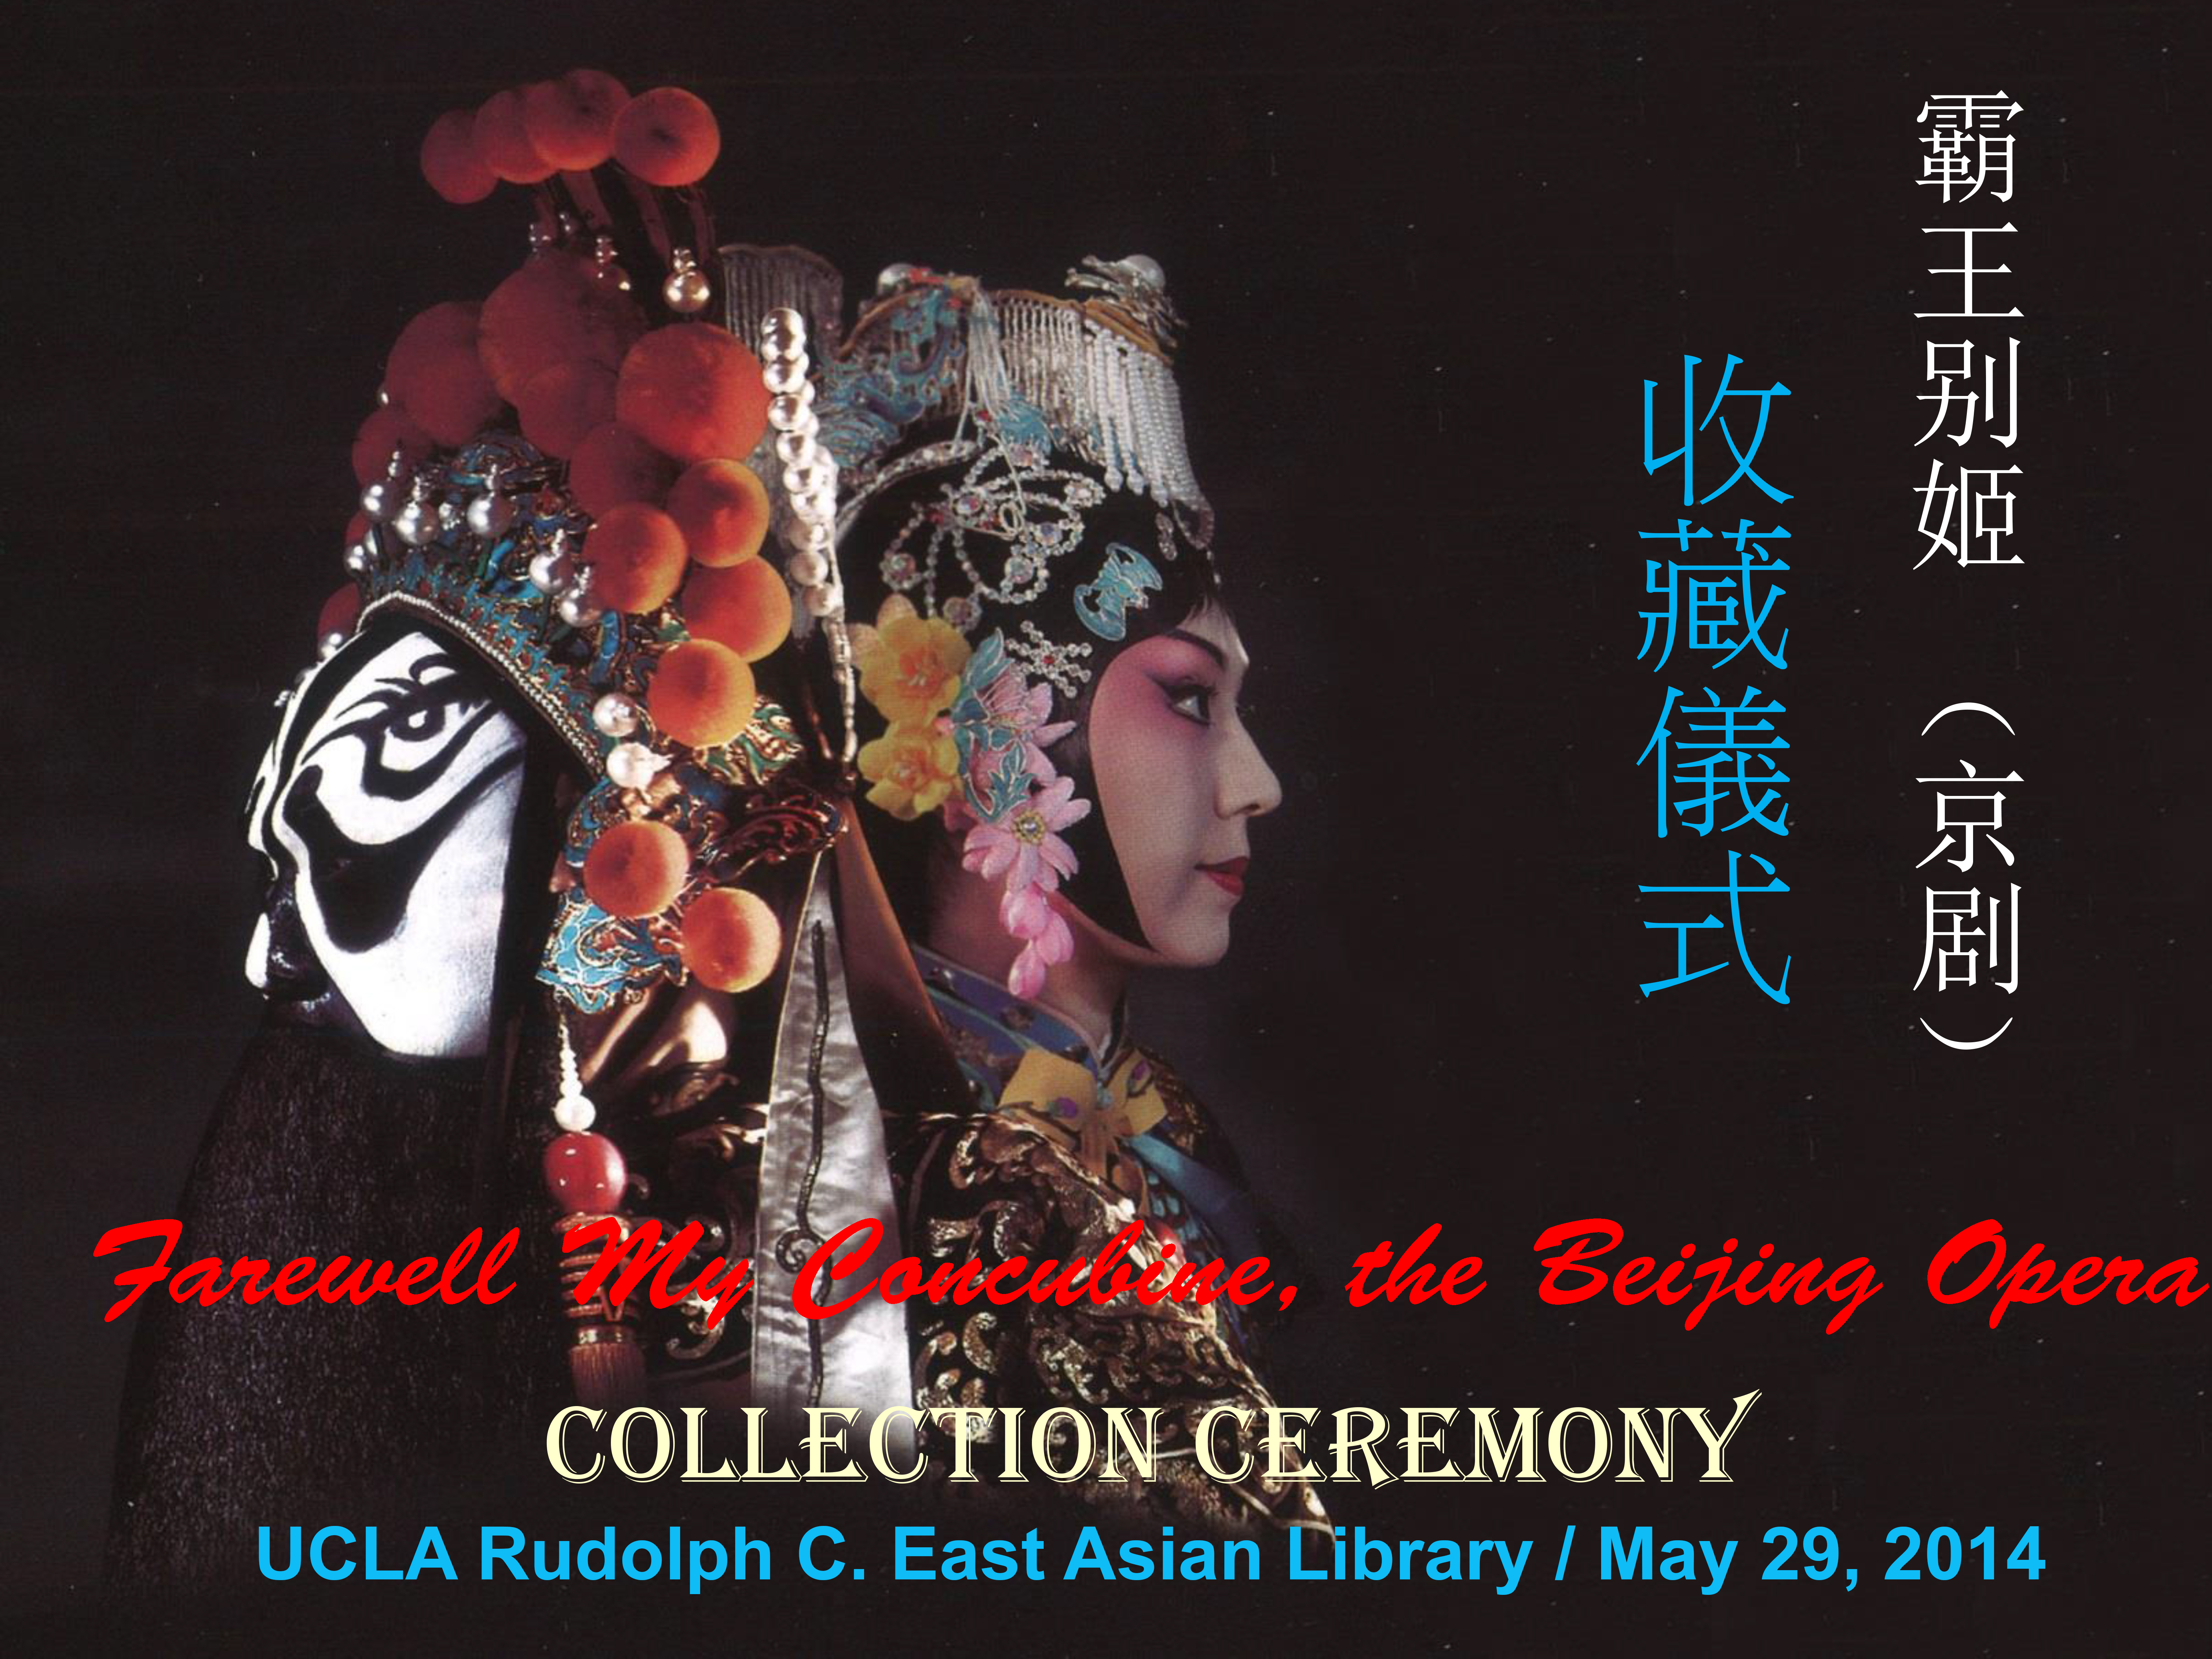 Collection Ceremony: Farewell My Concubine, The Beijing Opera